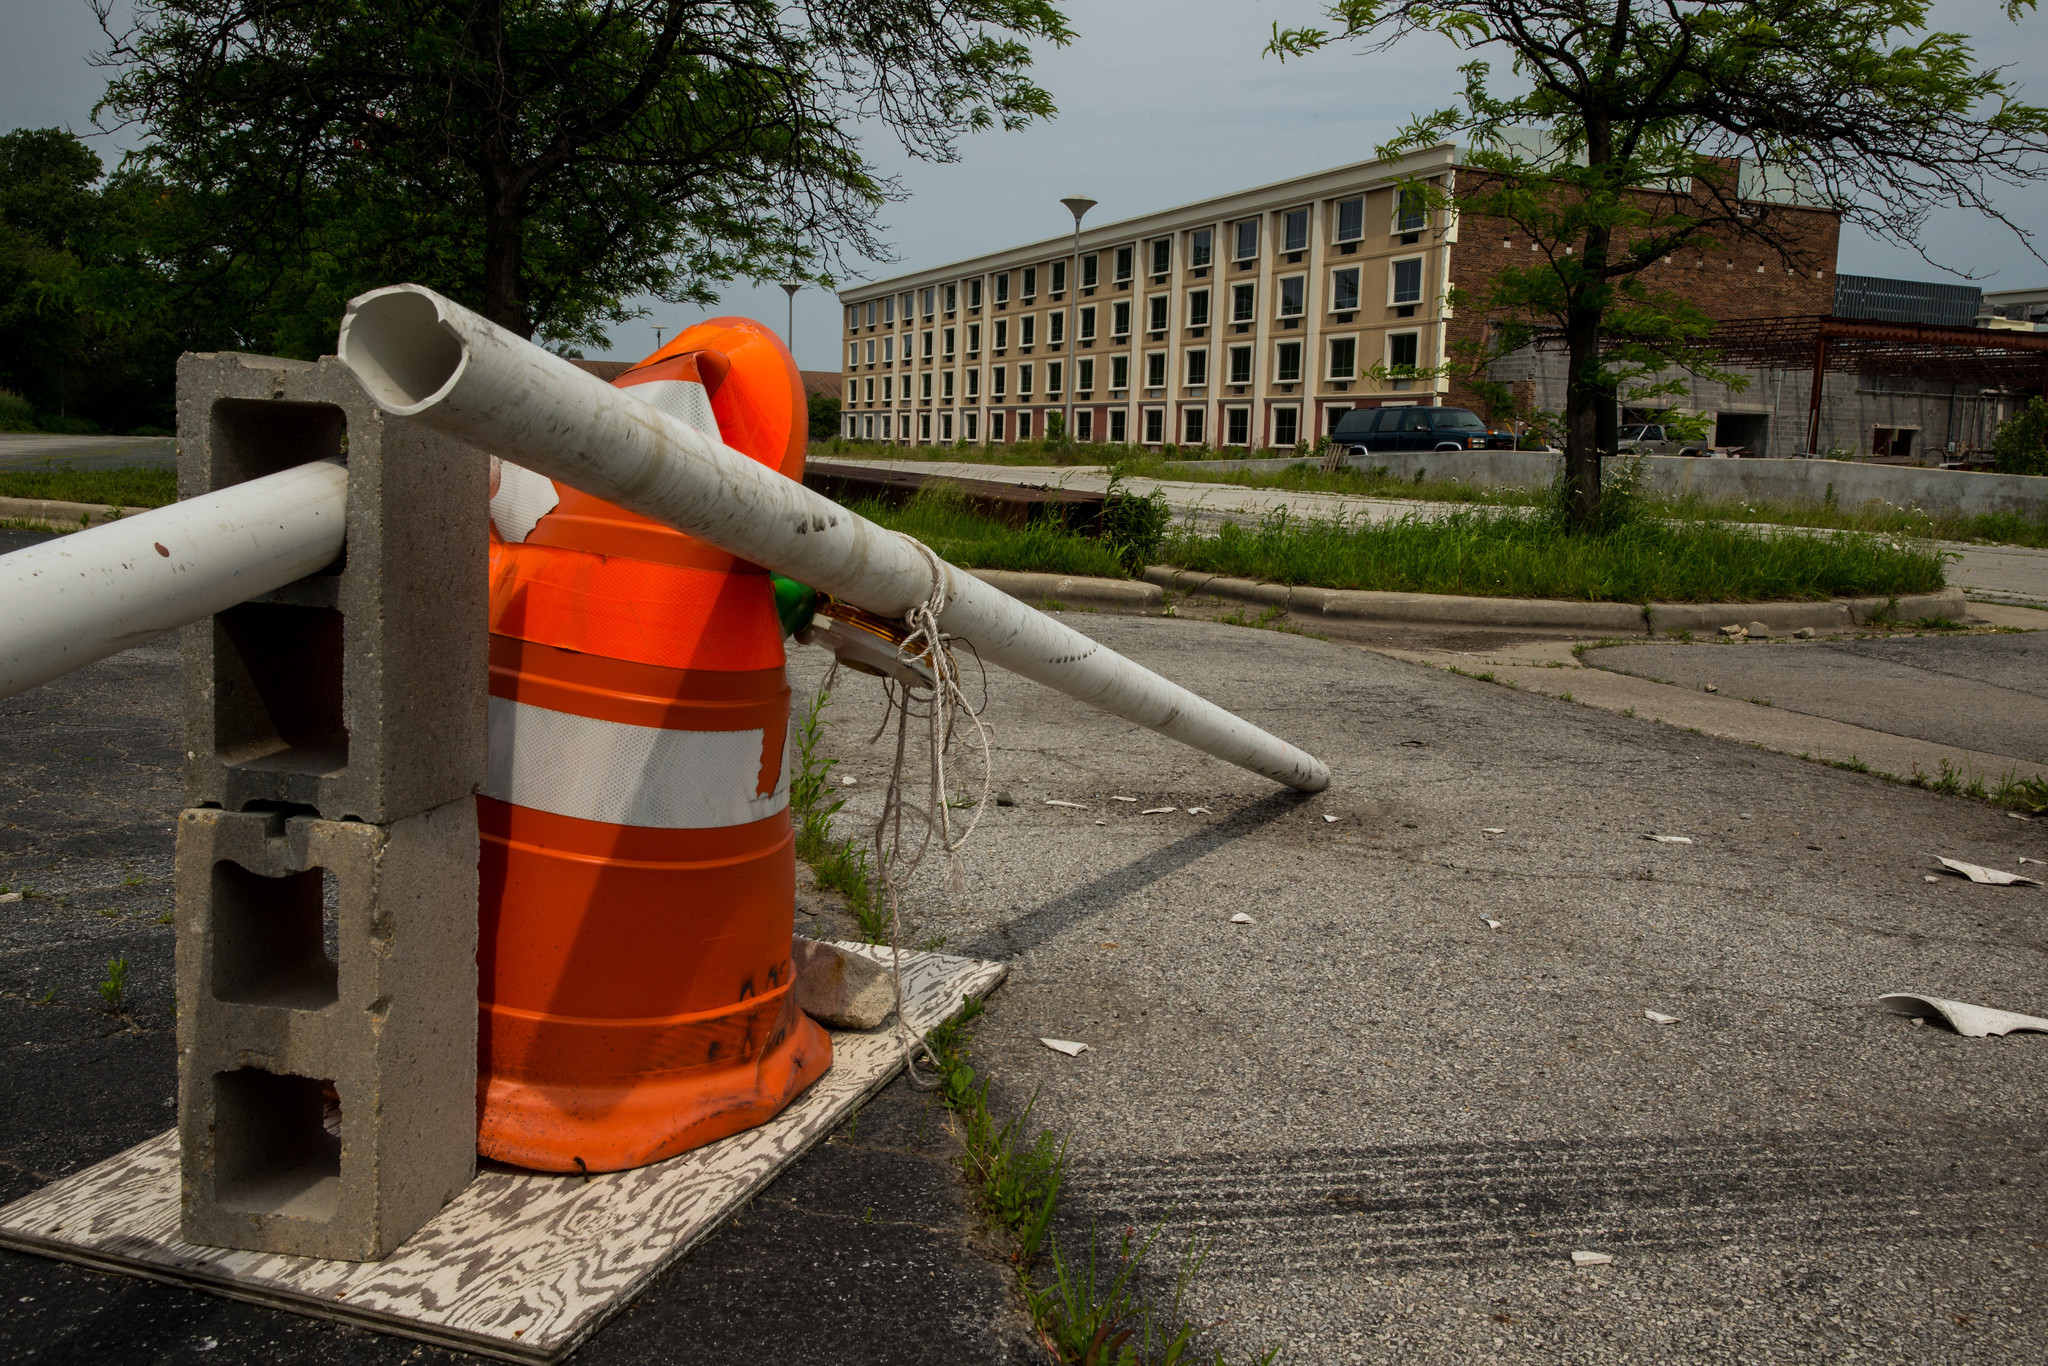 The vacant Chicago Park Hotel near Interstate 294 and Halsted Street in Harvey on Friday, June 21, 2013.